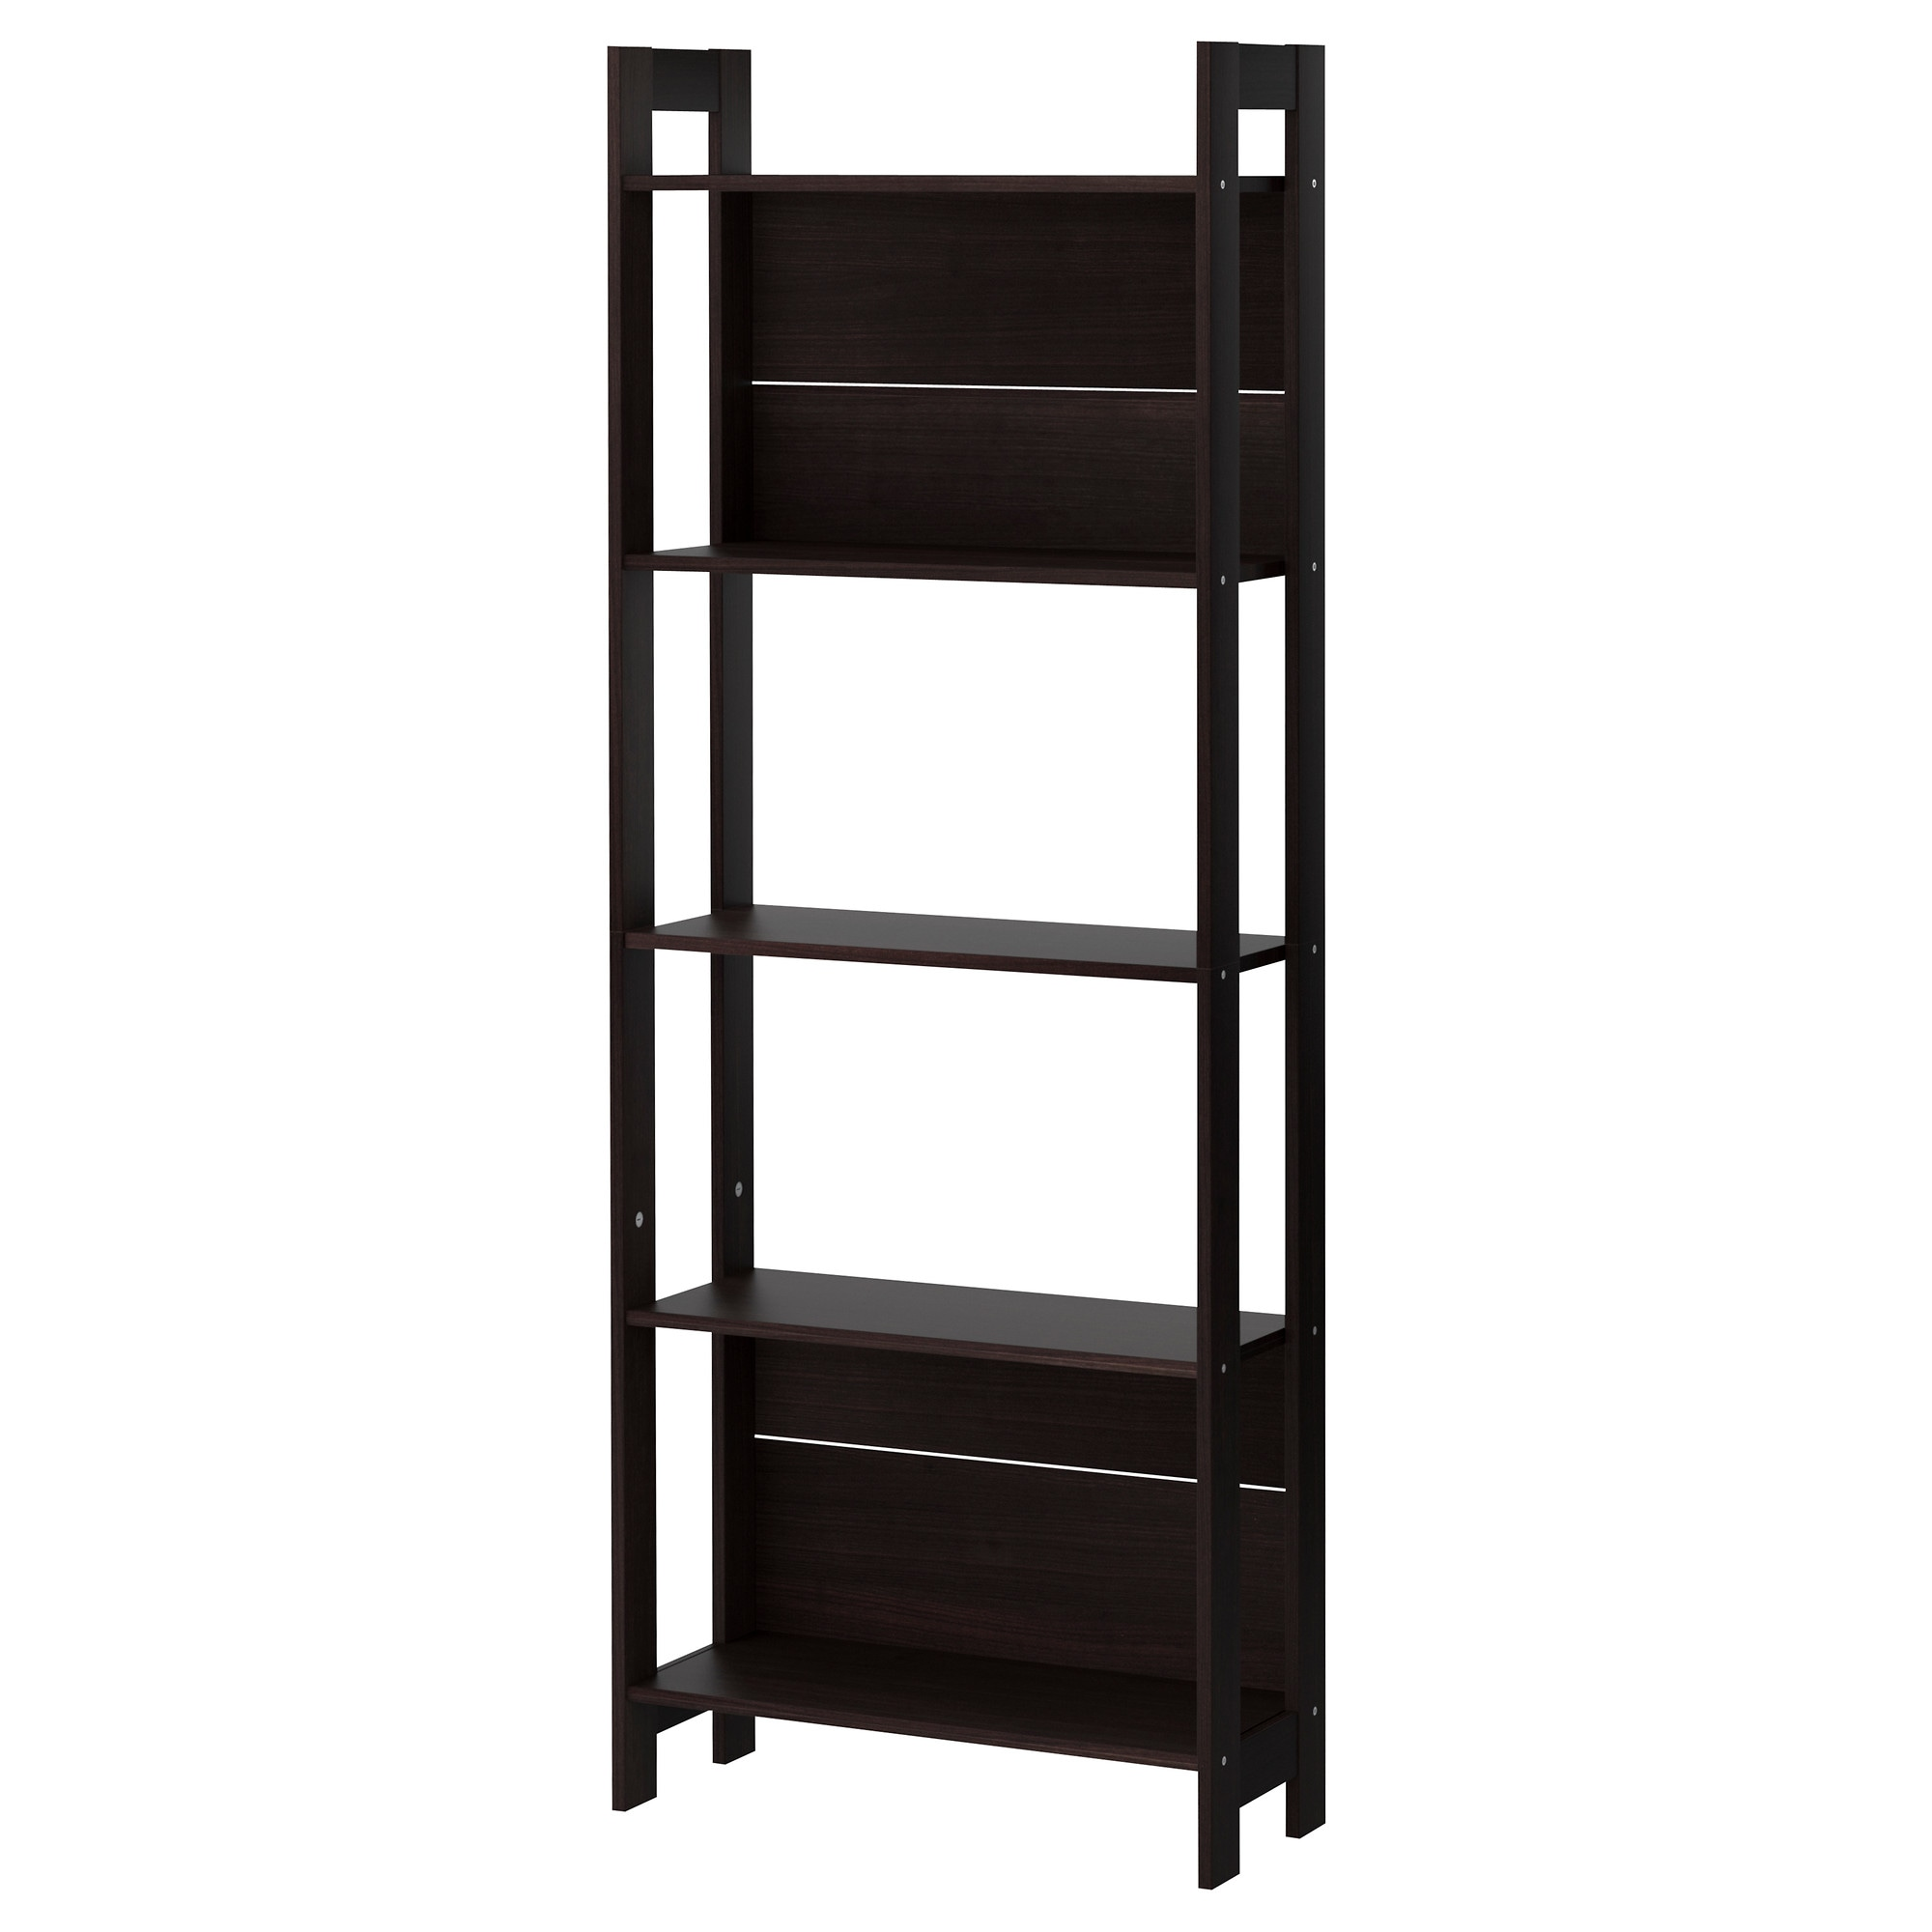 ikea ladder shelves - Google Search